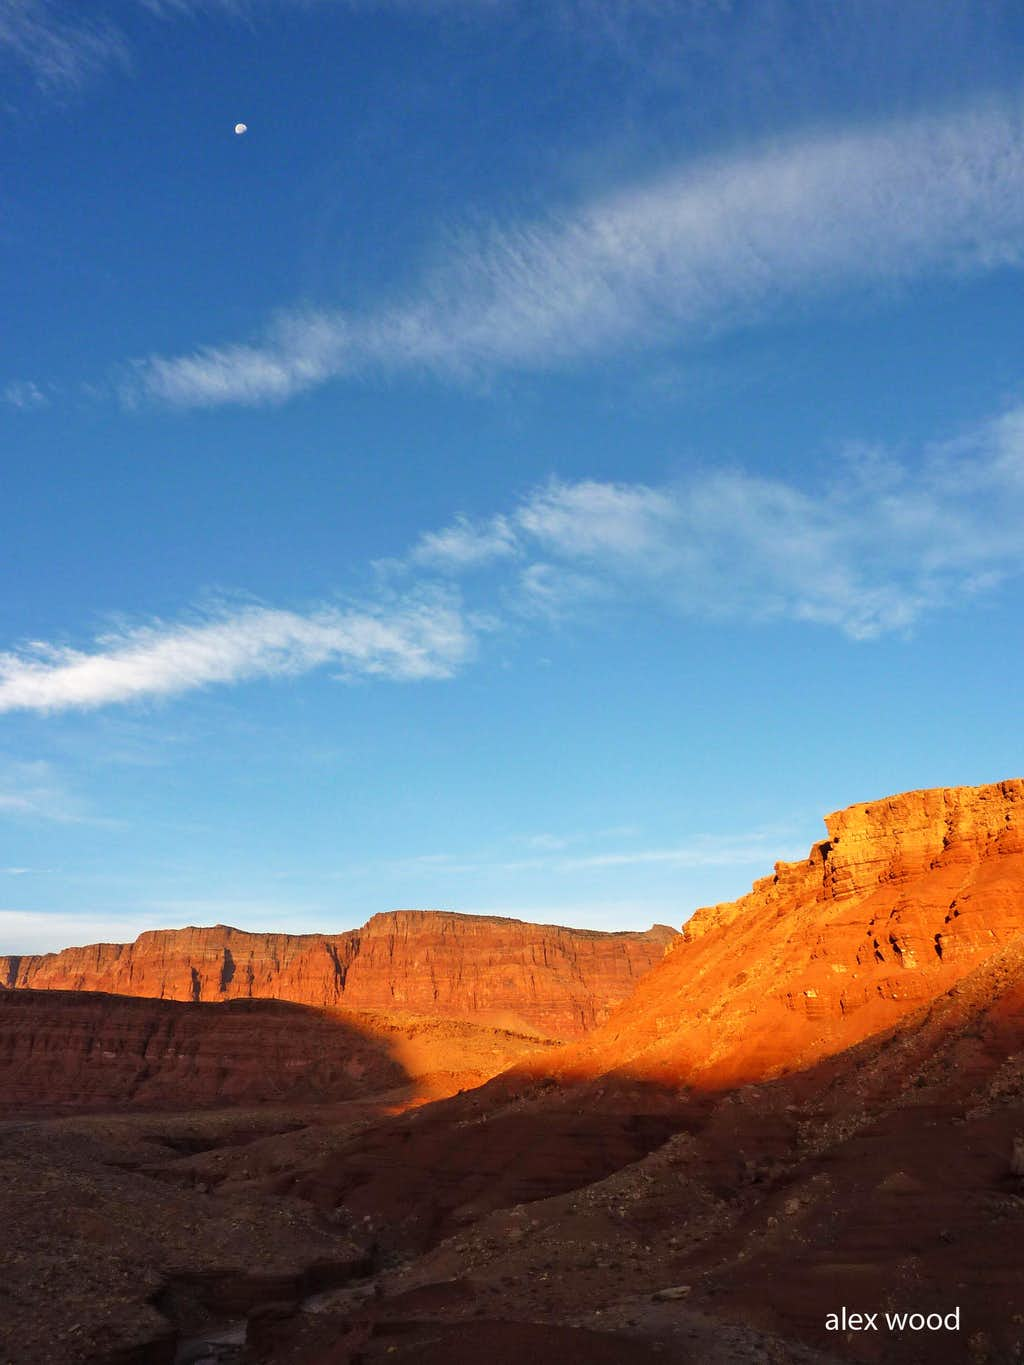 Desertglow on the Vermilion Cliffs with the Moon